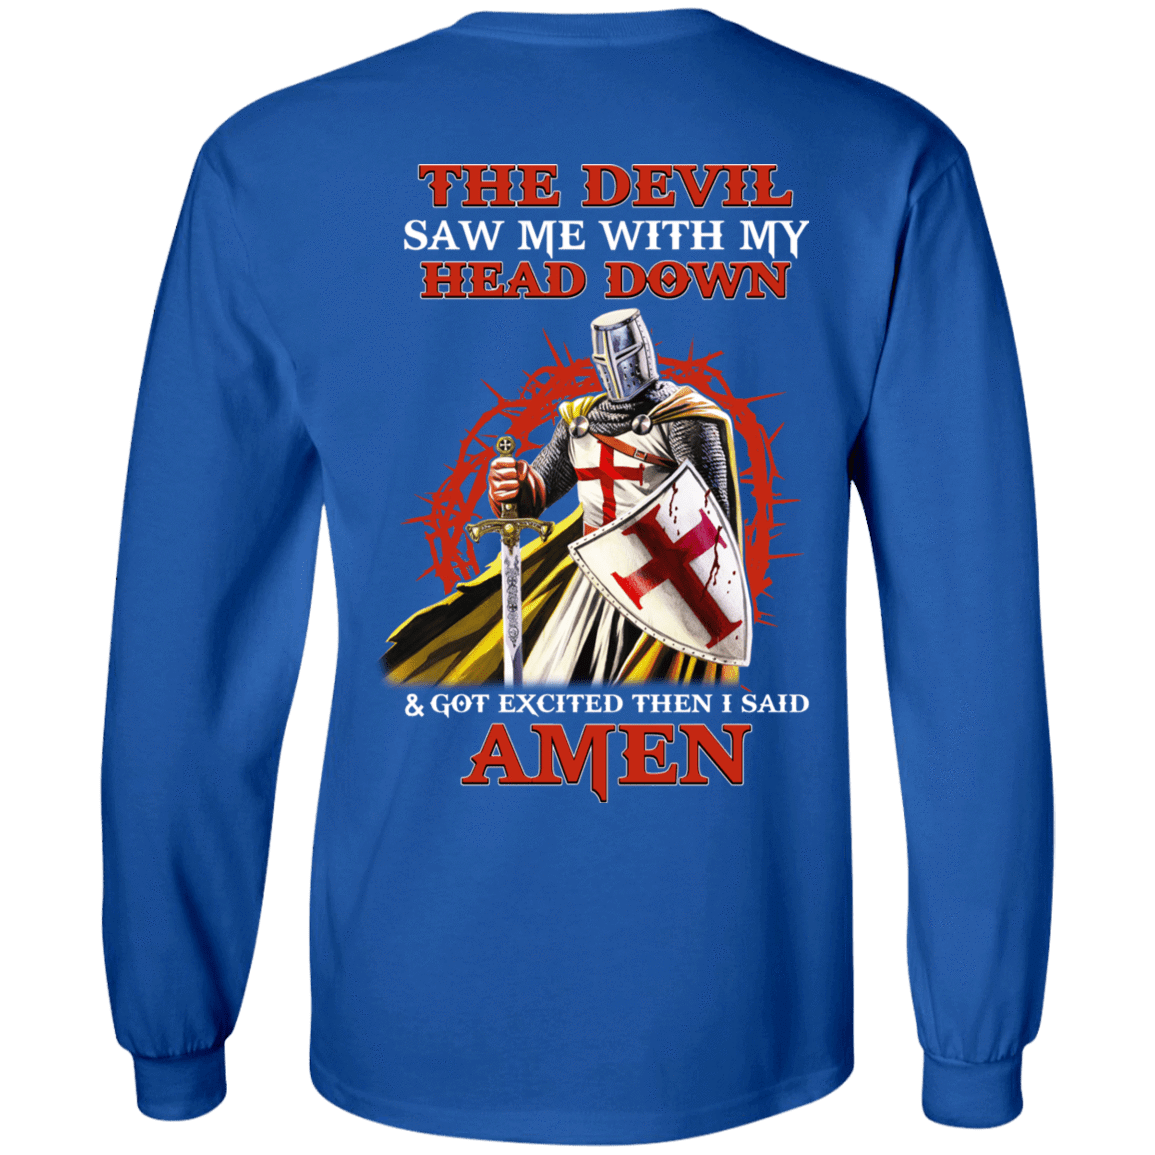 Knight Templar: The Devil Saw Me My Head Down Excited Said Amen 30-183-72774896-330 - Tee Ript